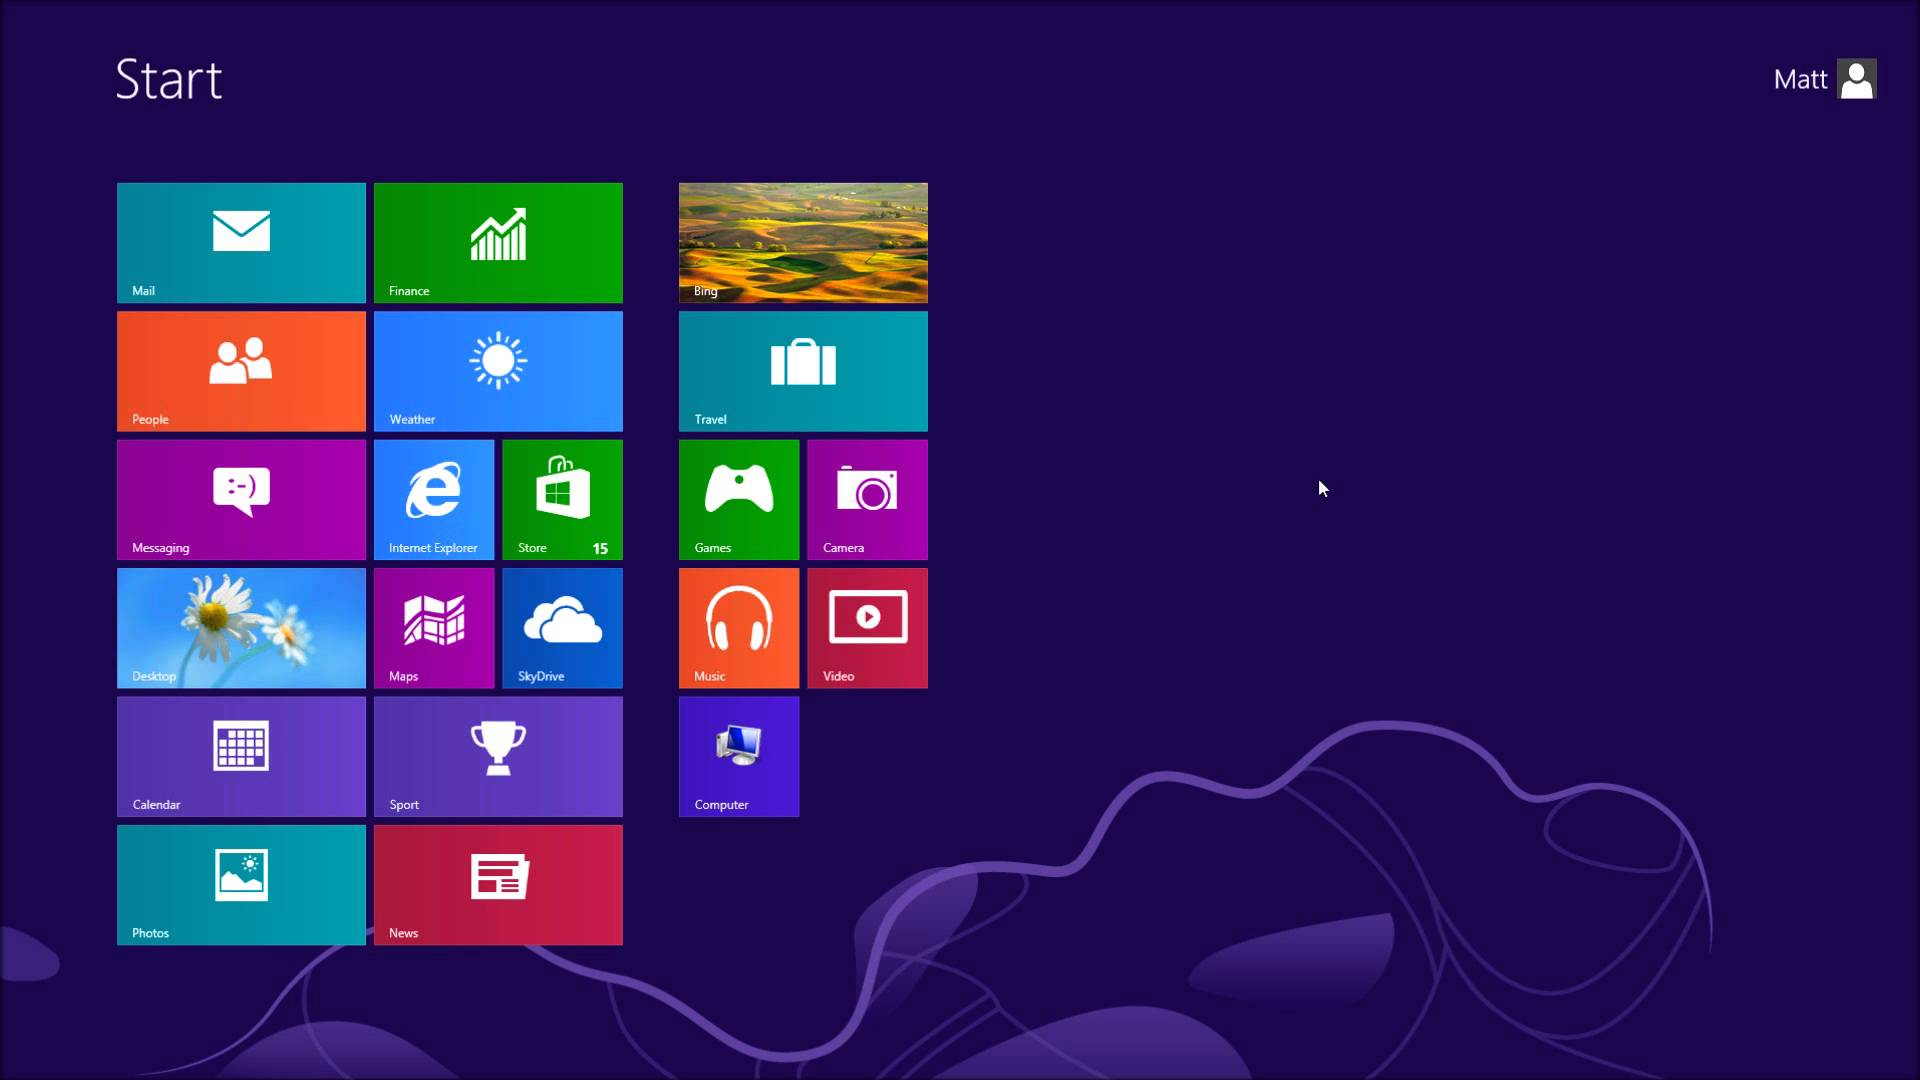 Windows 8.1 Pro is ready for business - Sea to Sky